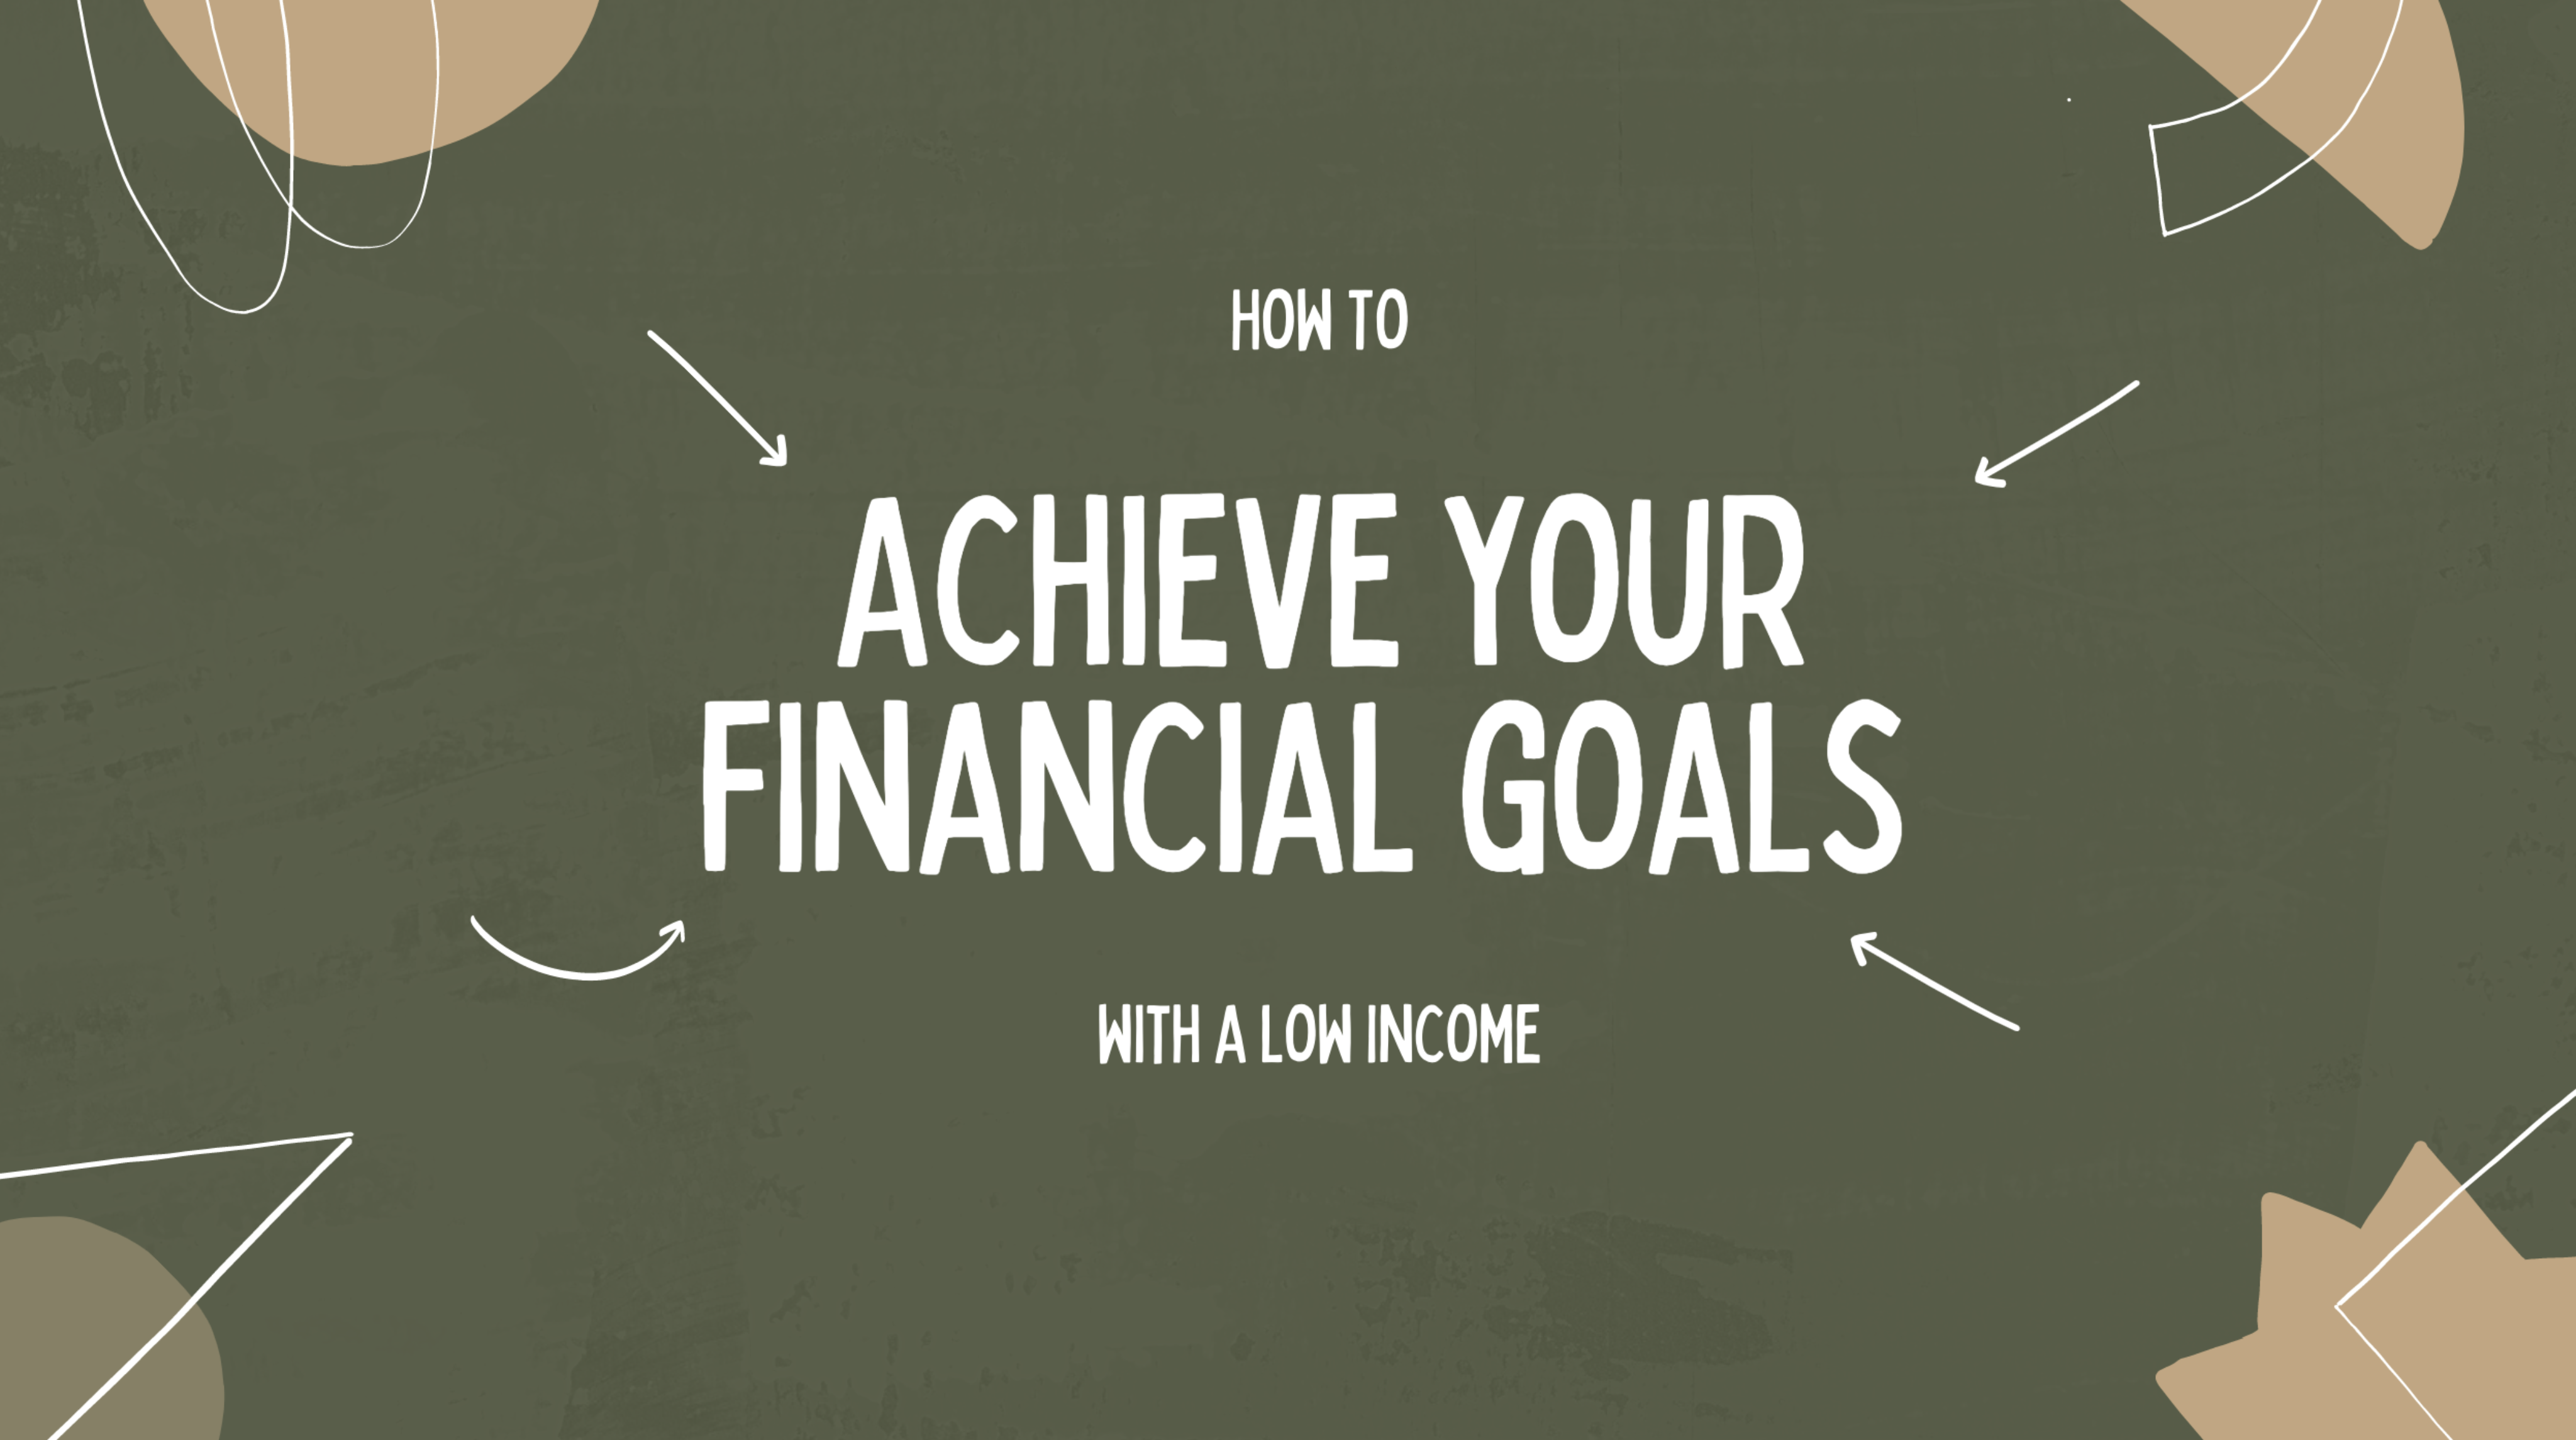 How To Achieve Your Financial Goals With A Low Income